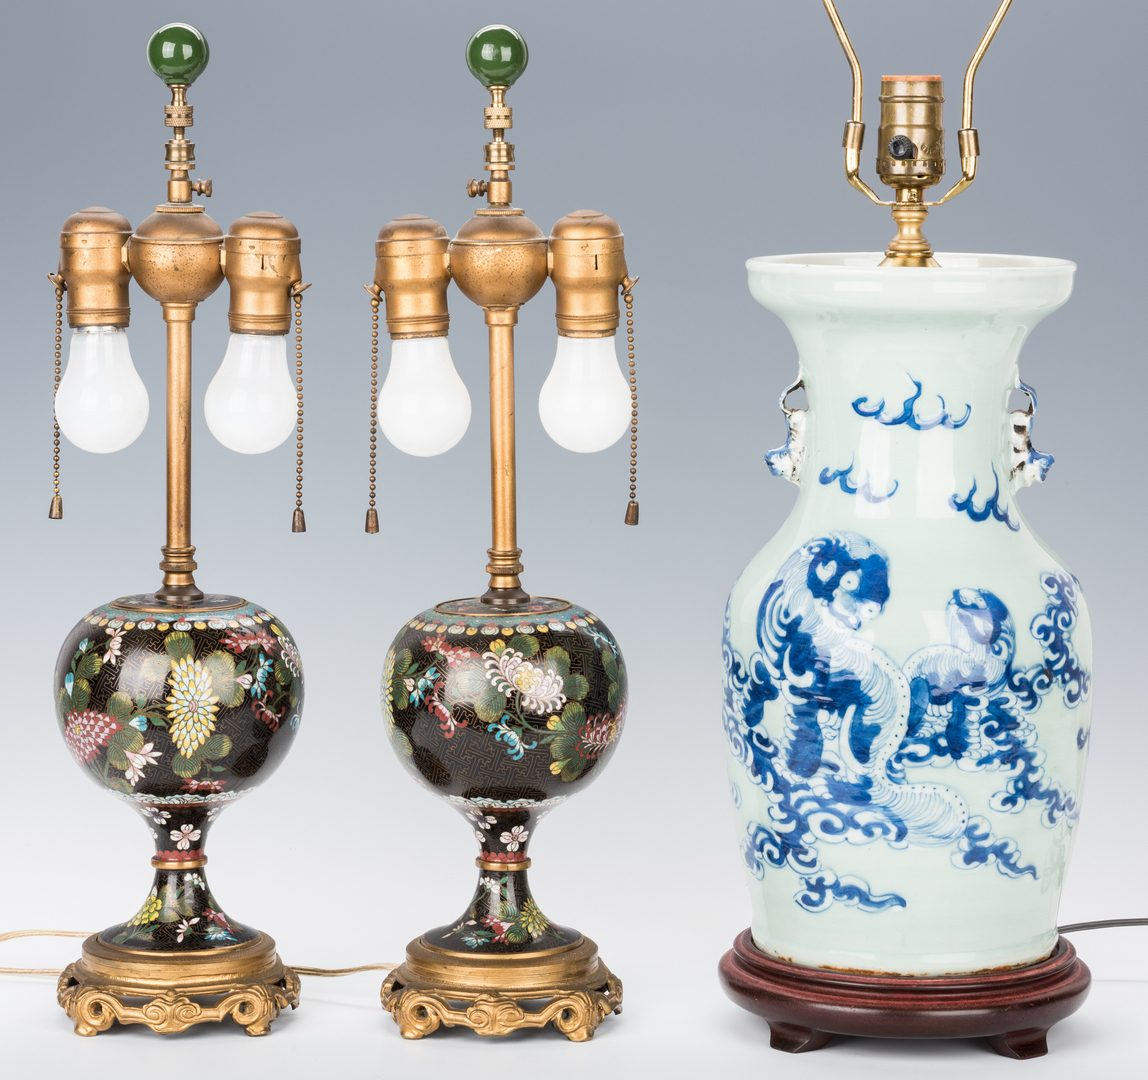 Lot 30: Pr. Chinese Cloisonne Lamps; Blue/White Porcelain Lamp, 3 items total